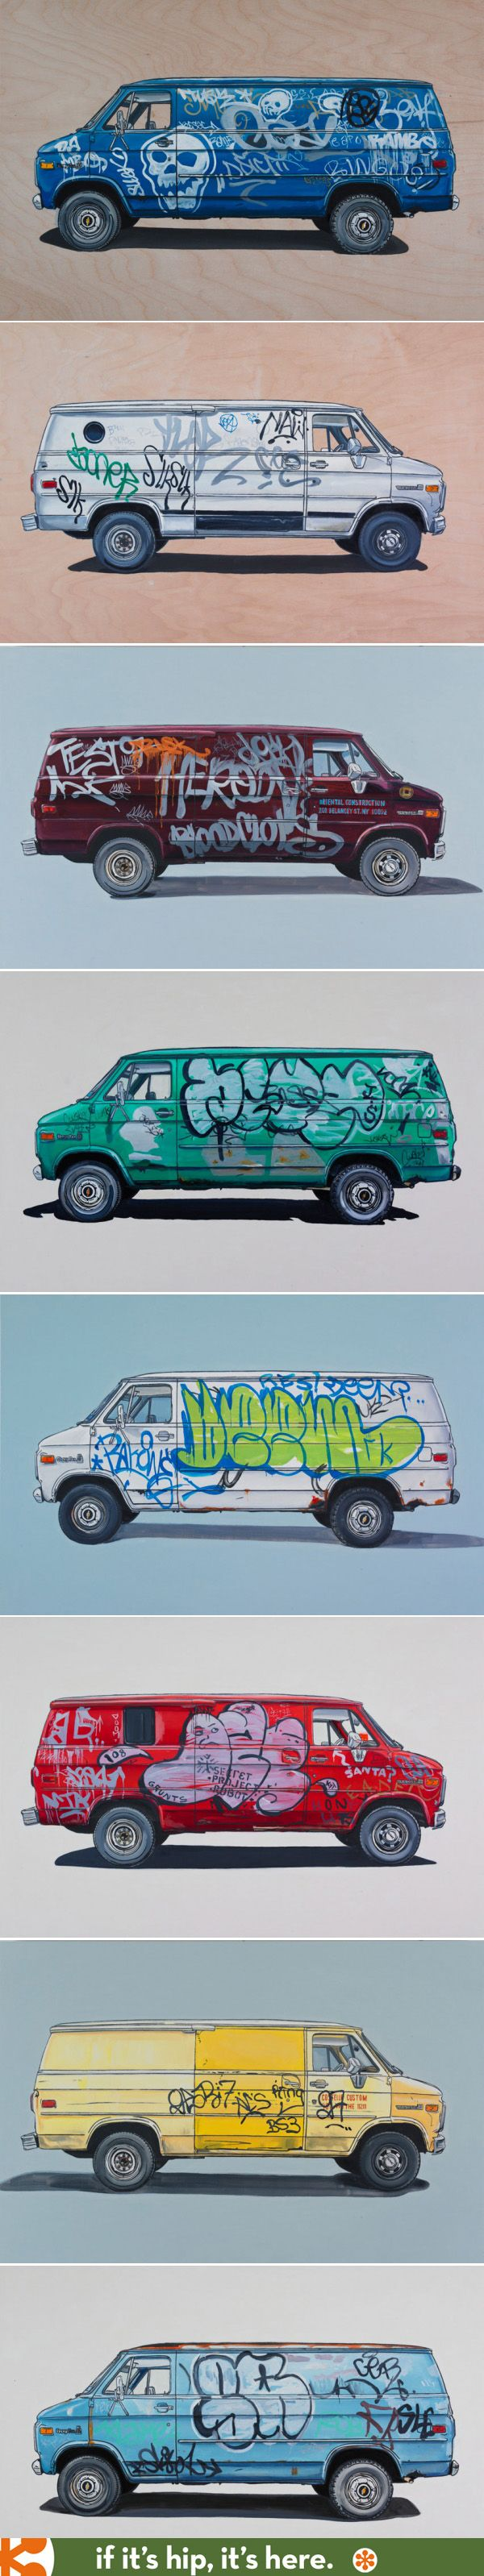 Van paintings by Kevin Cyr. Great fun and they look great in any home. See all 20 at the link.